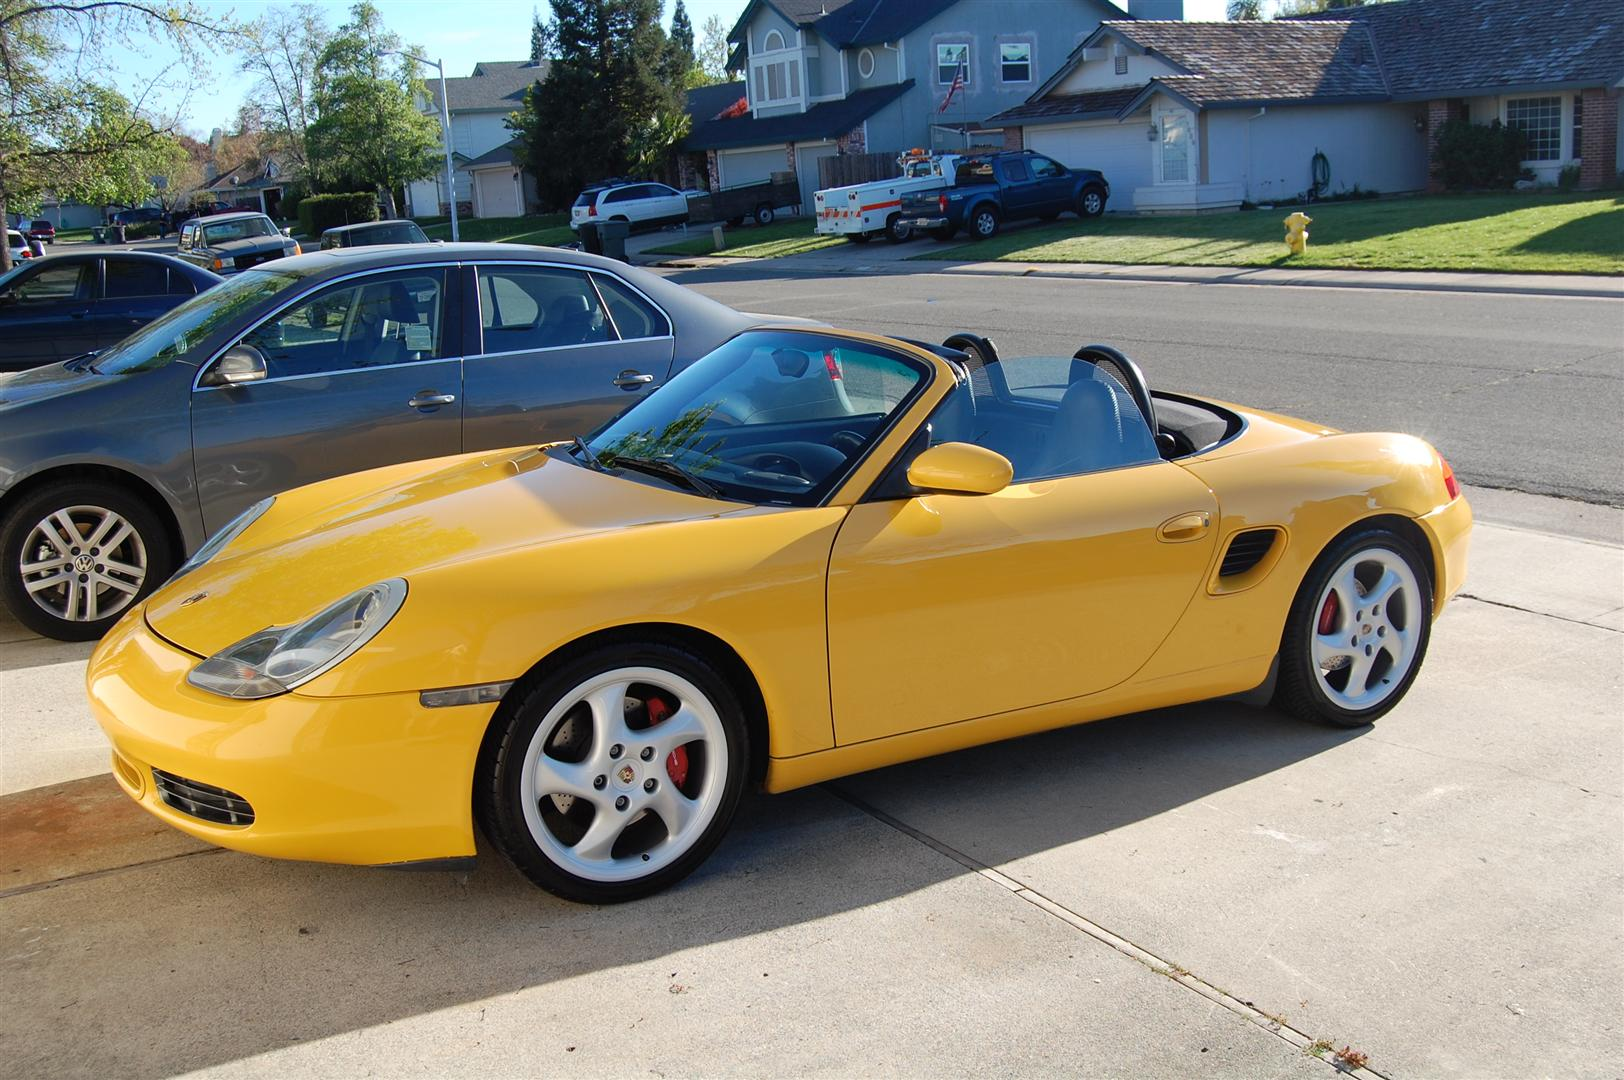 986 Forum - for Porsche Boxster & Cayman Owners - View Single Post